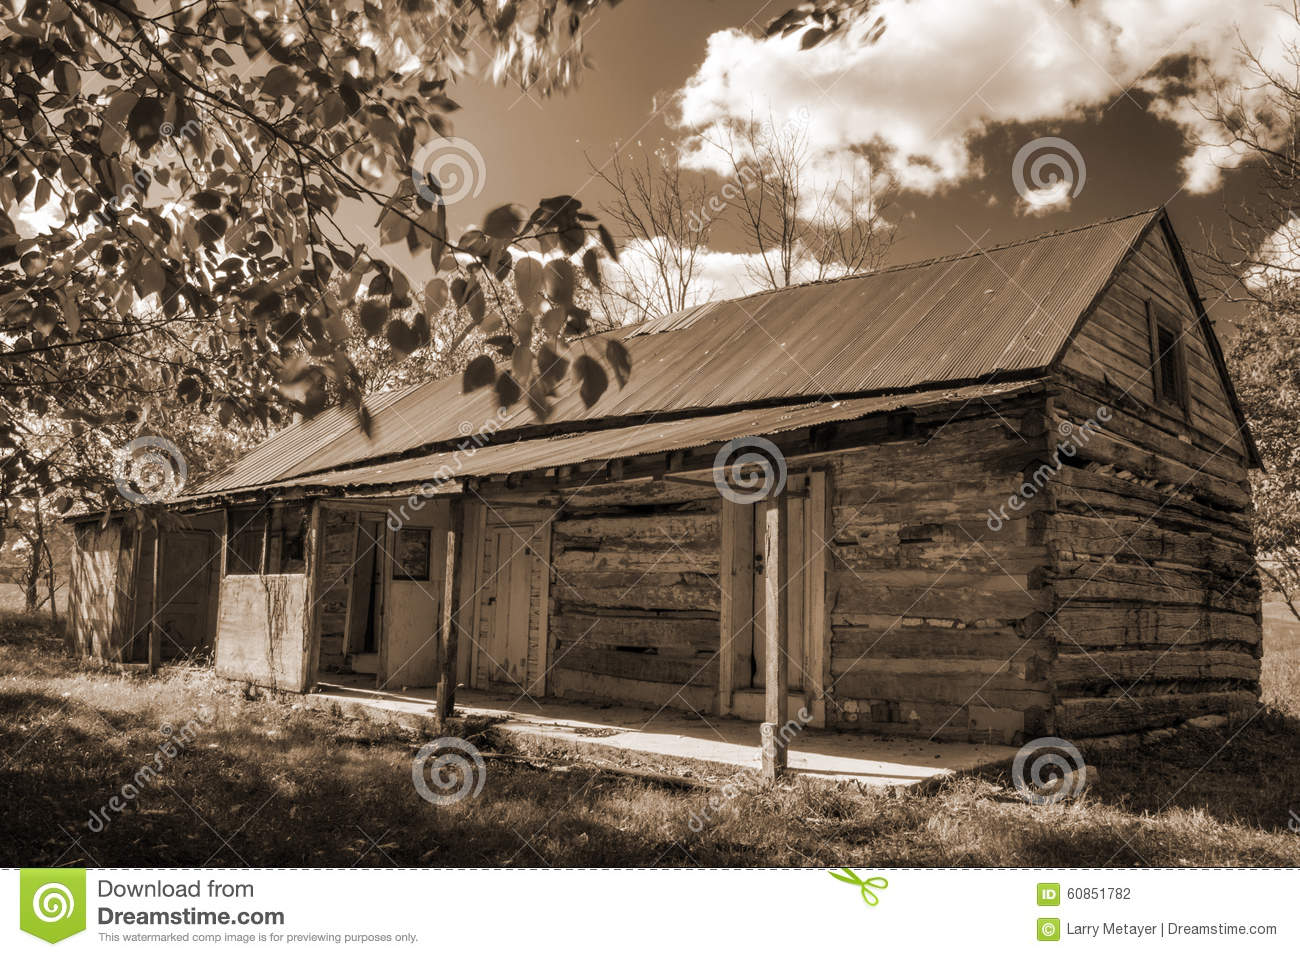 Superb img of Old log cabin located in the Blue Ridge Mountains of Virginia USA. with #86AA21 color and 1300x957 pixels